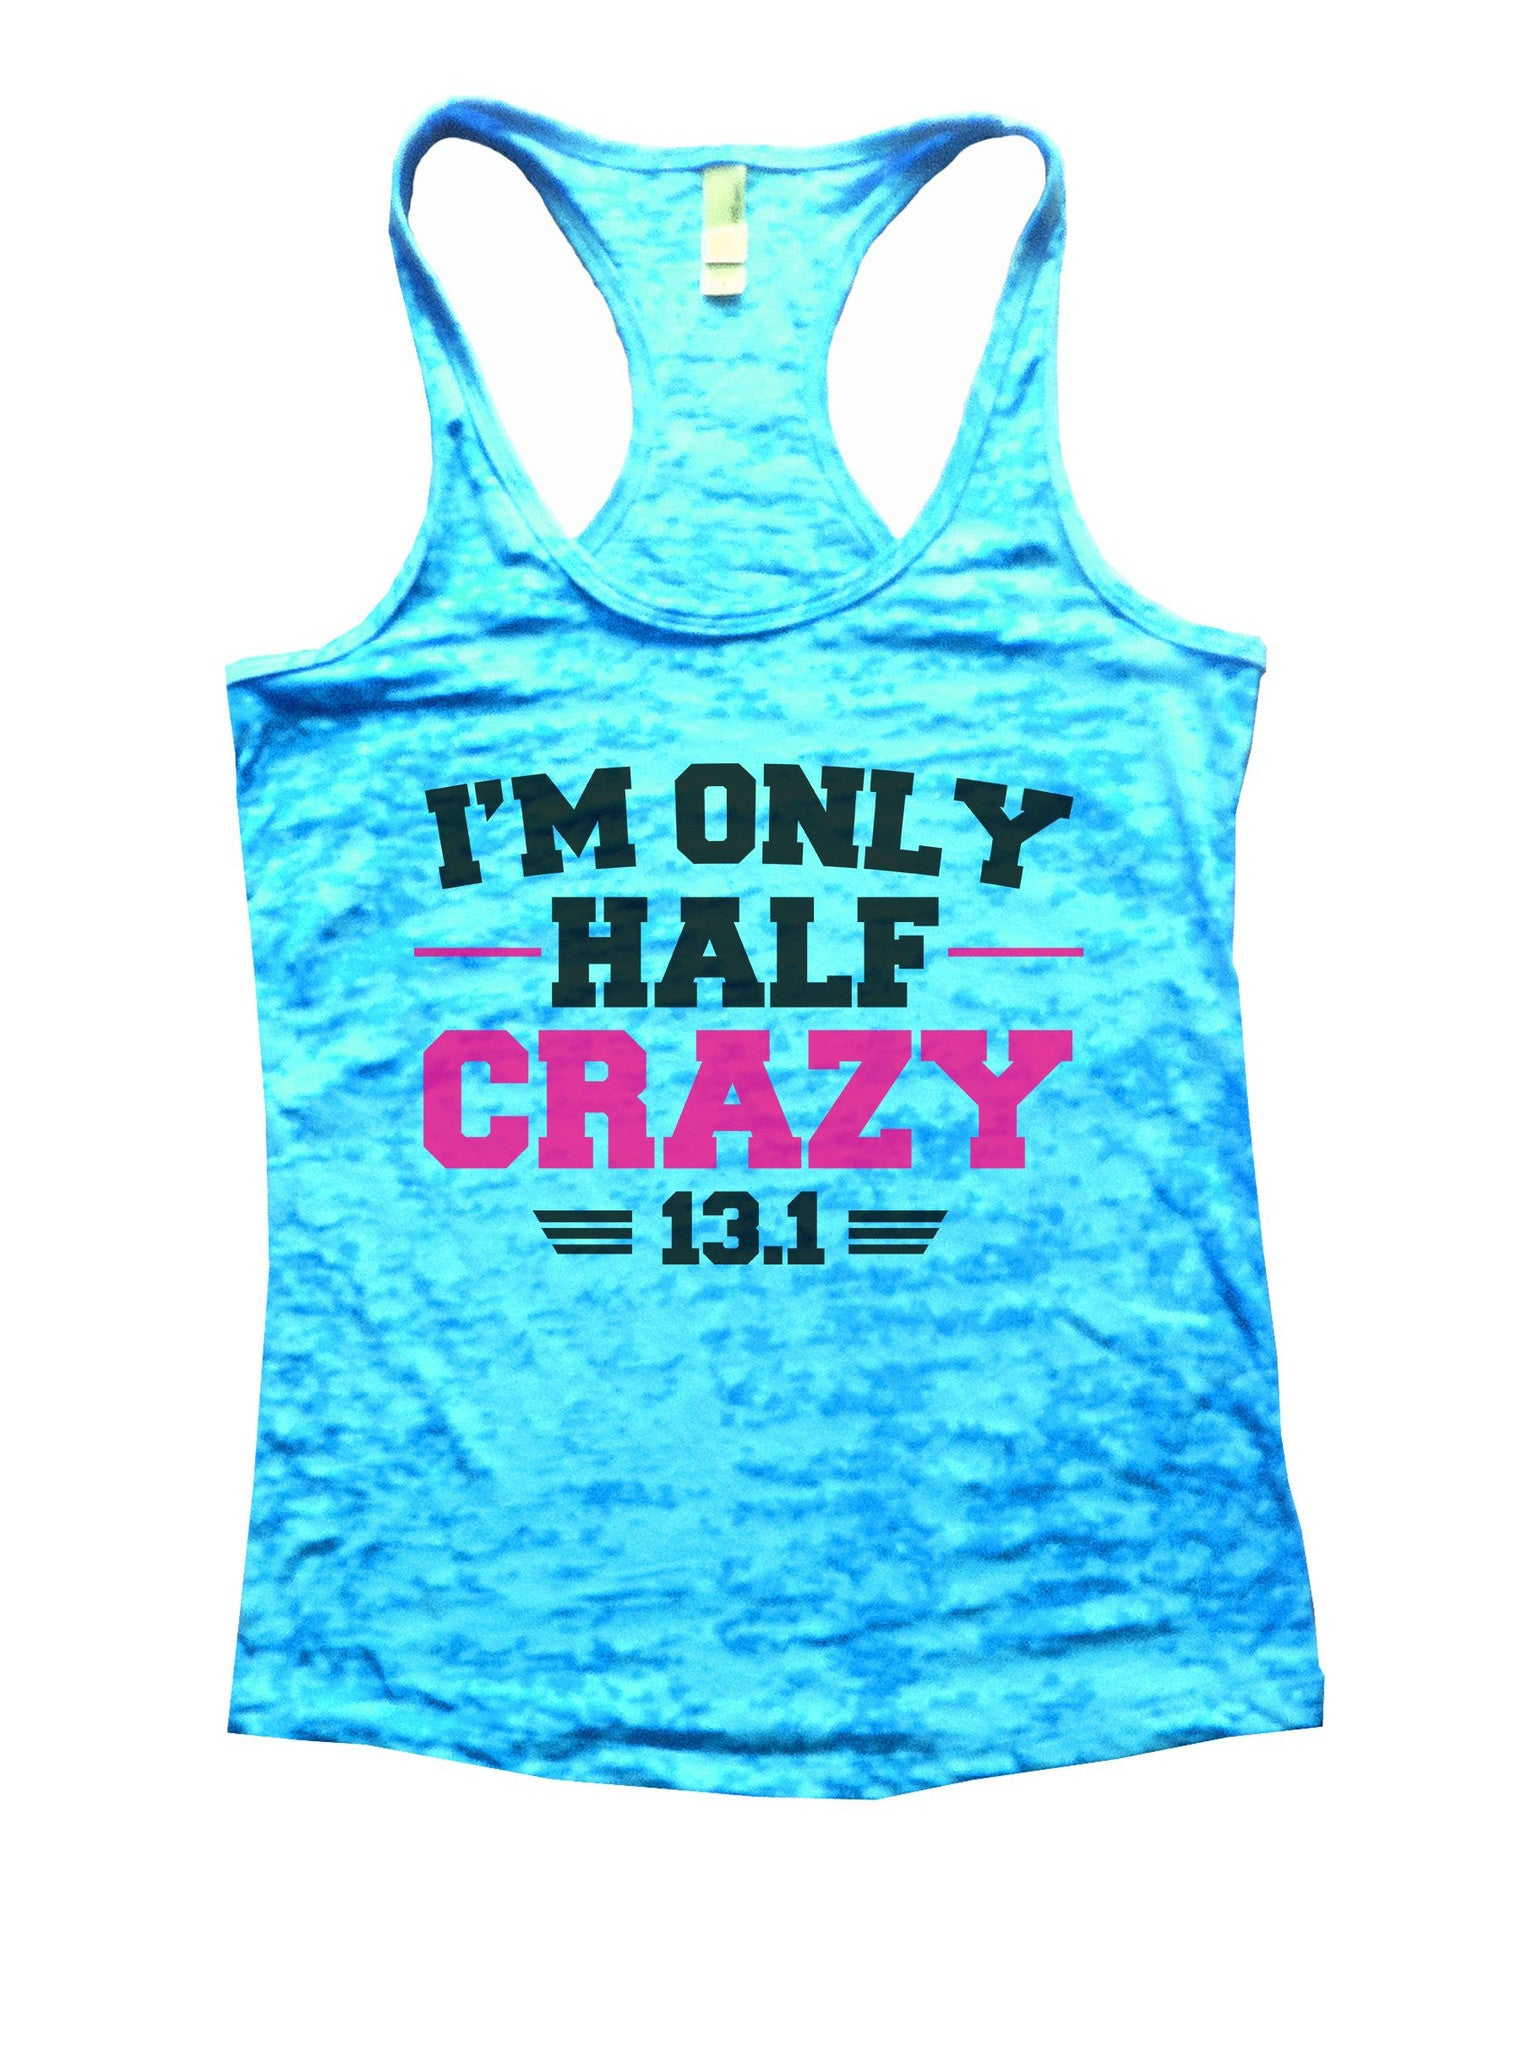 I'm Only Half Crazy 13.1 Burnout Tank Top By BurnoutTankTops.com - 1040 - Funny Shirts Tank Tops Burnouts and Triblends  - 4